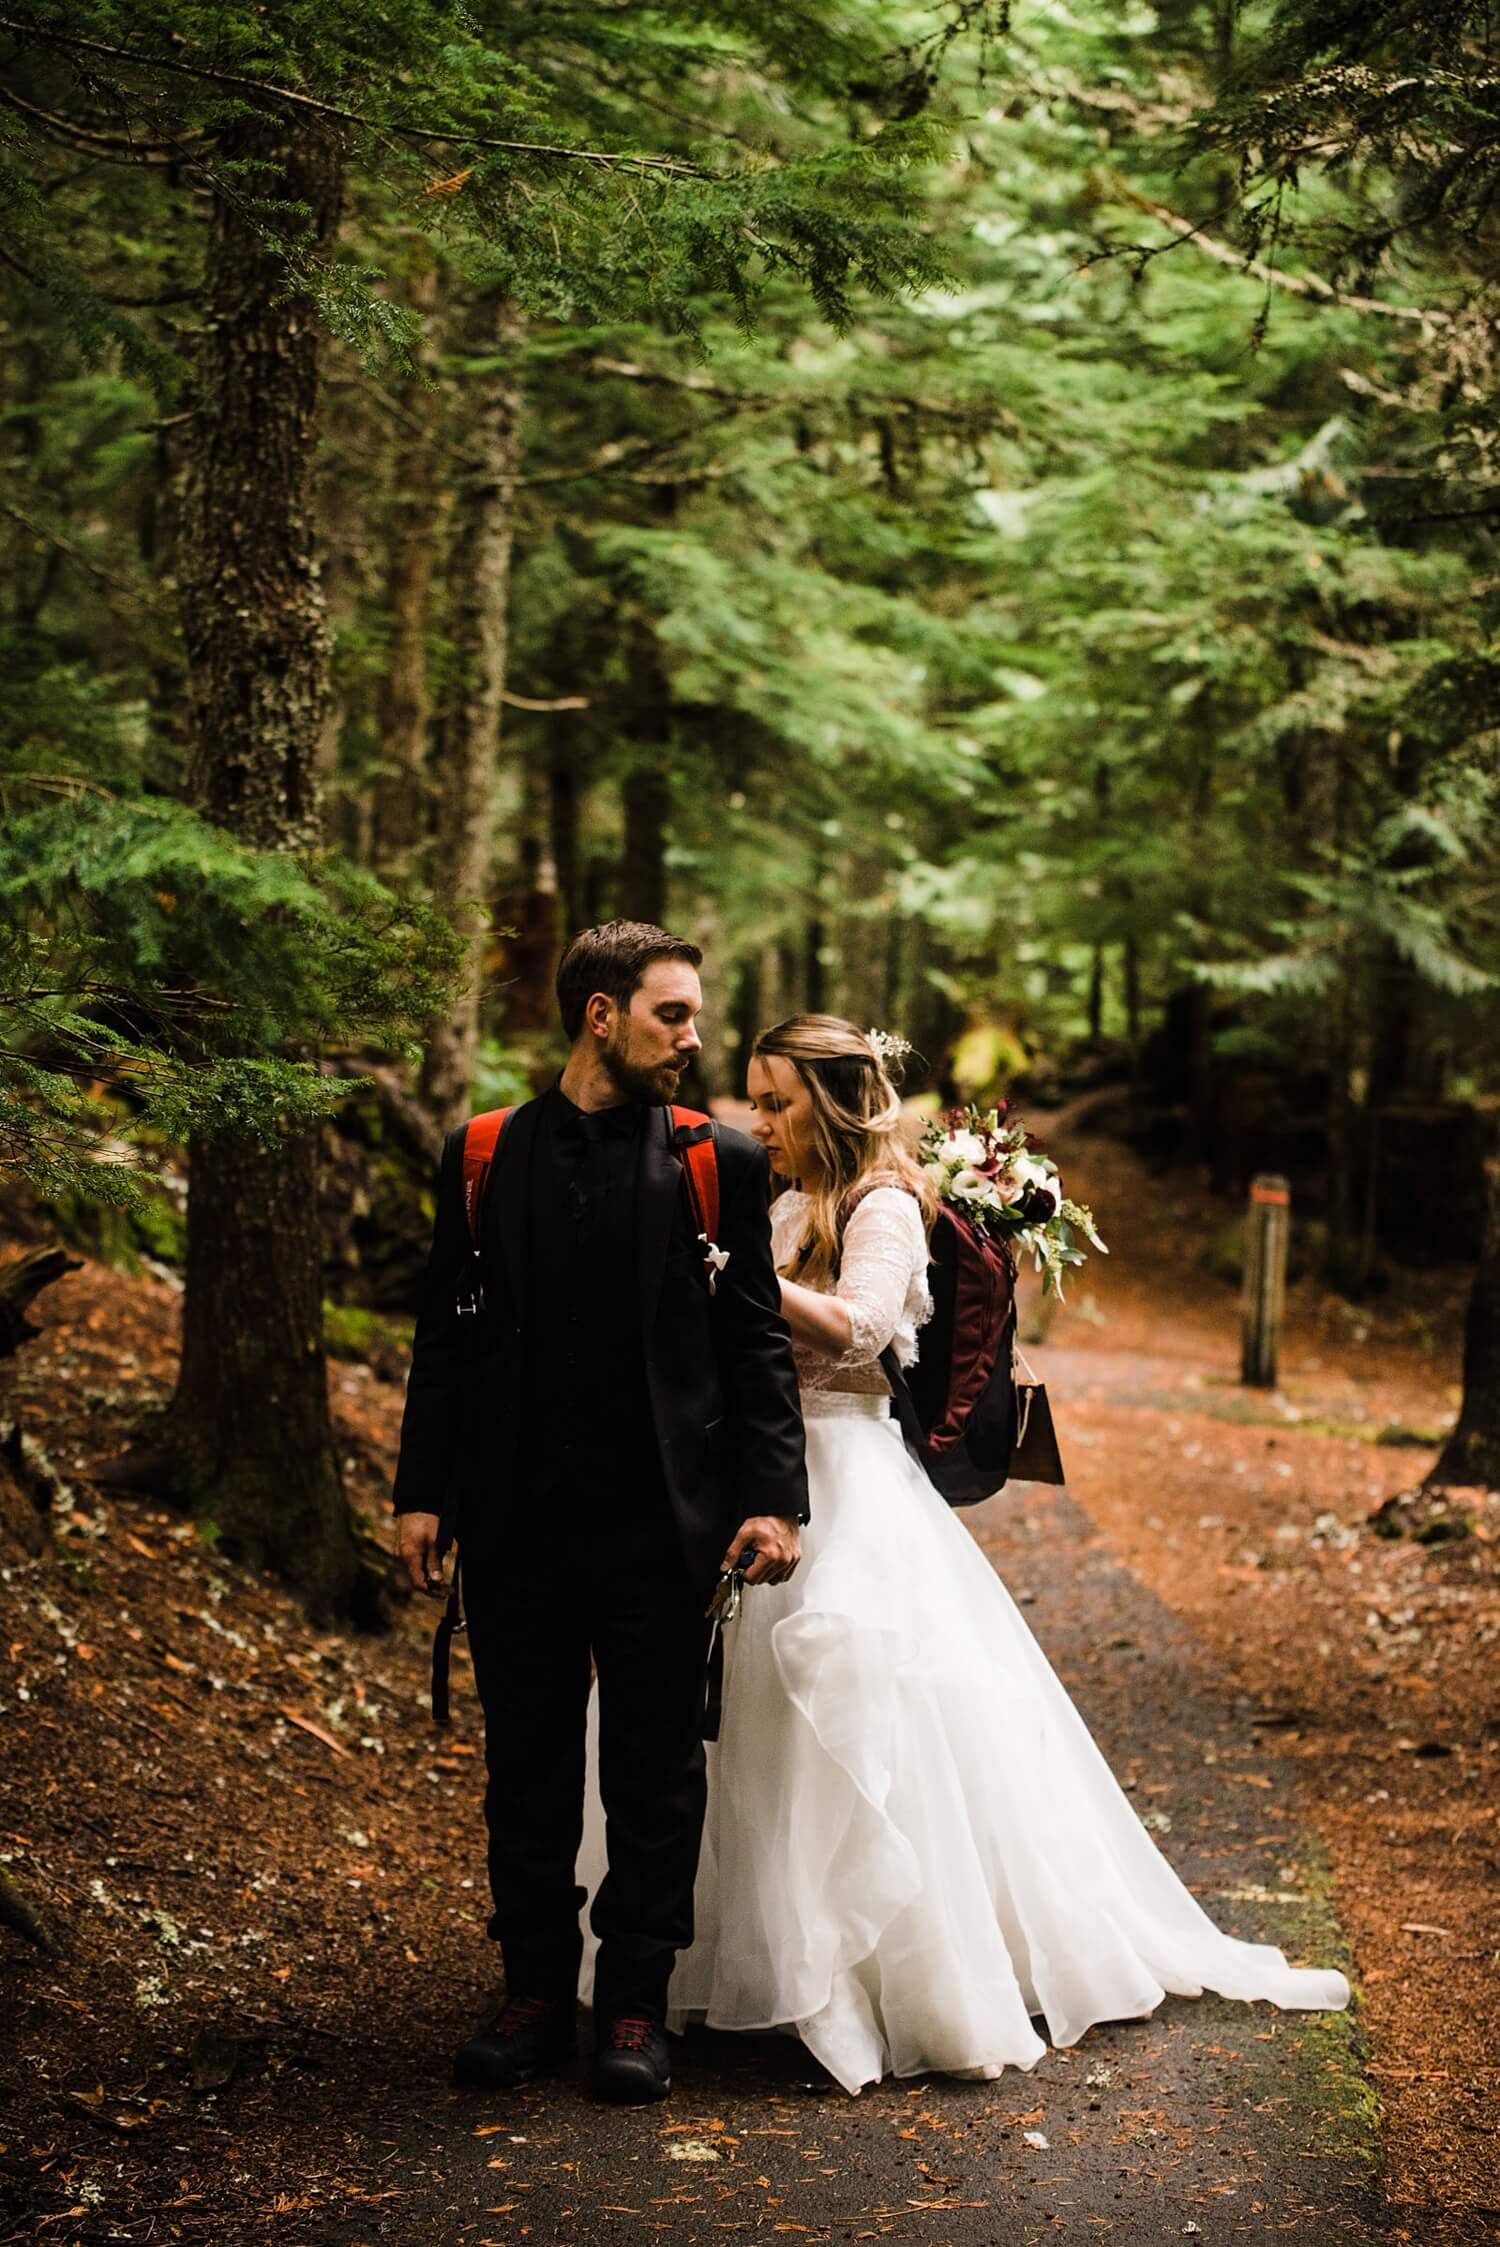 Mount Hood,Mt Hood,adventure elopement,adventure elopement photographer,mountain elopement,mt hood elopement,oregon elopement,oregon wedding,pacific northwest wedding,sam starns,